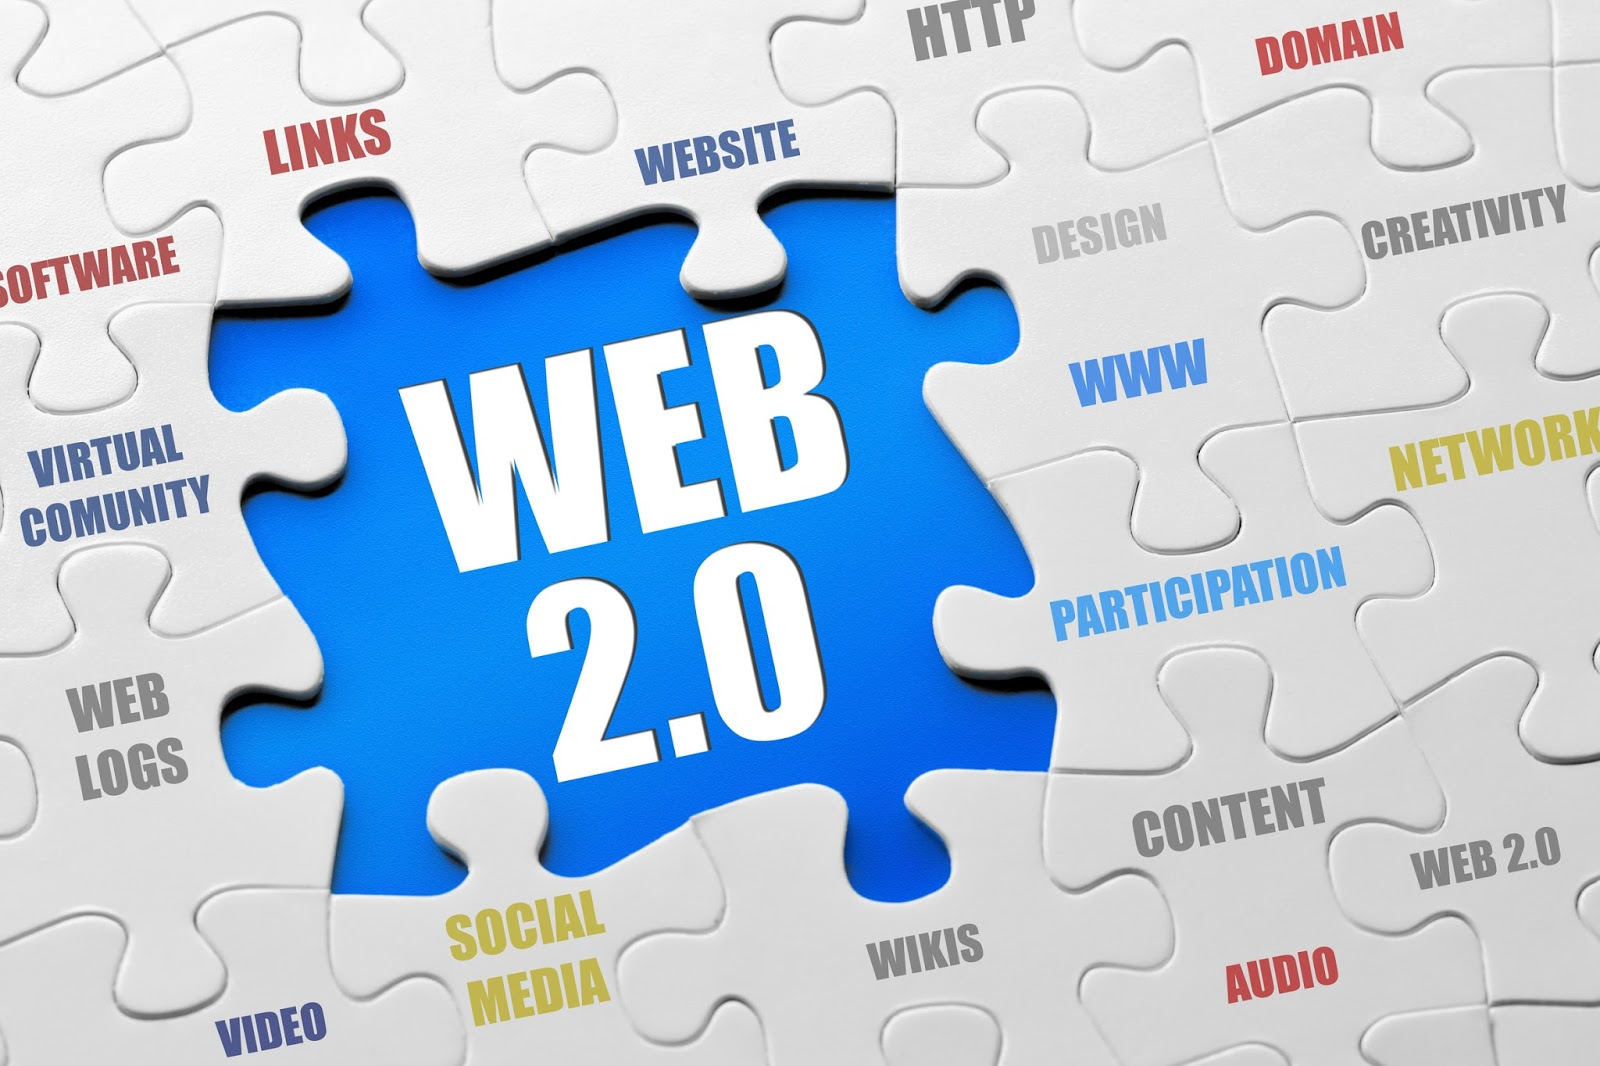 Manually web 2.0 Backlinks + 20 Bookmarking On high PR site